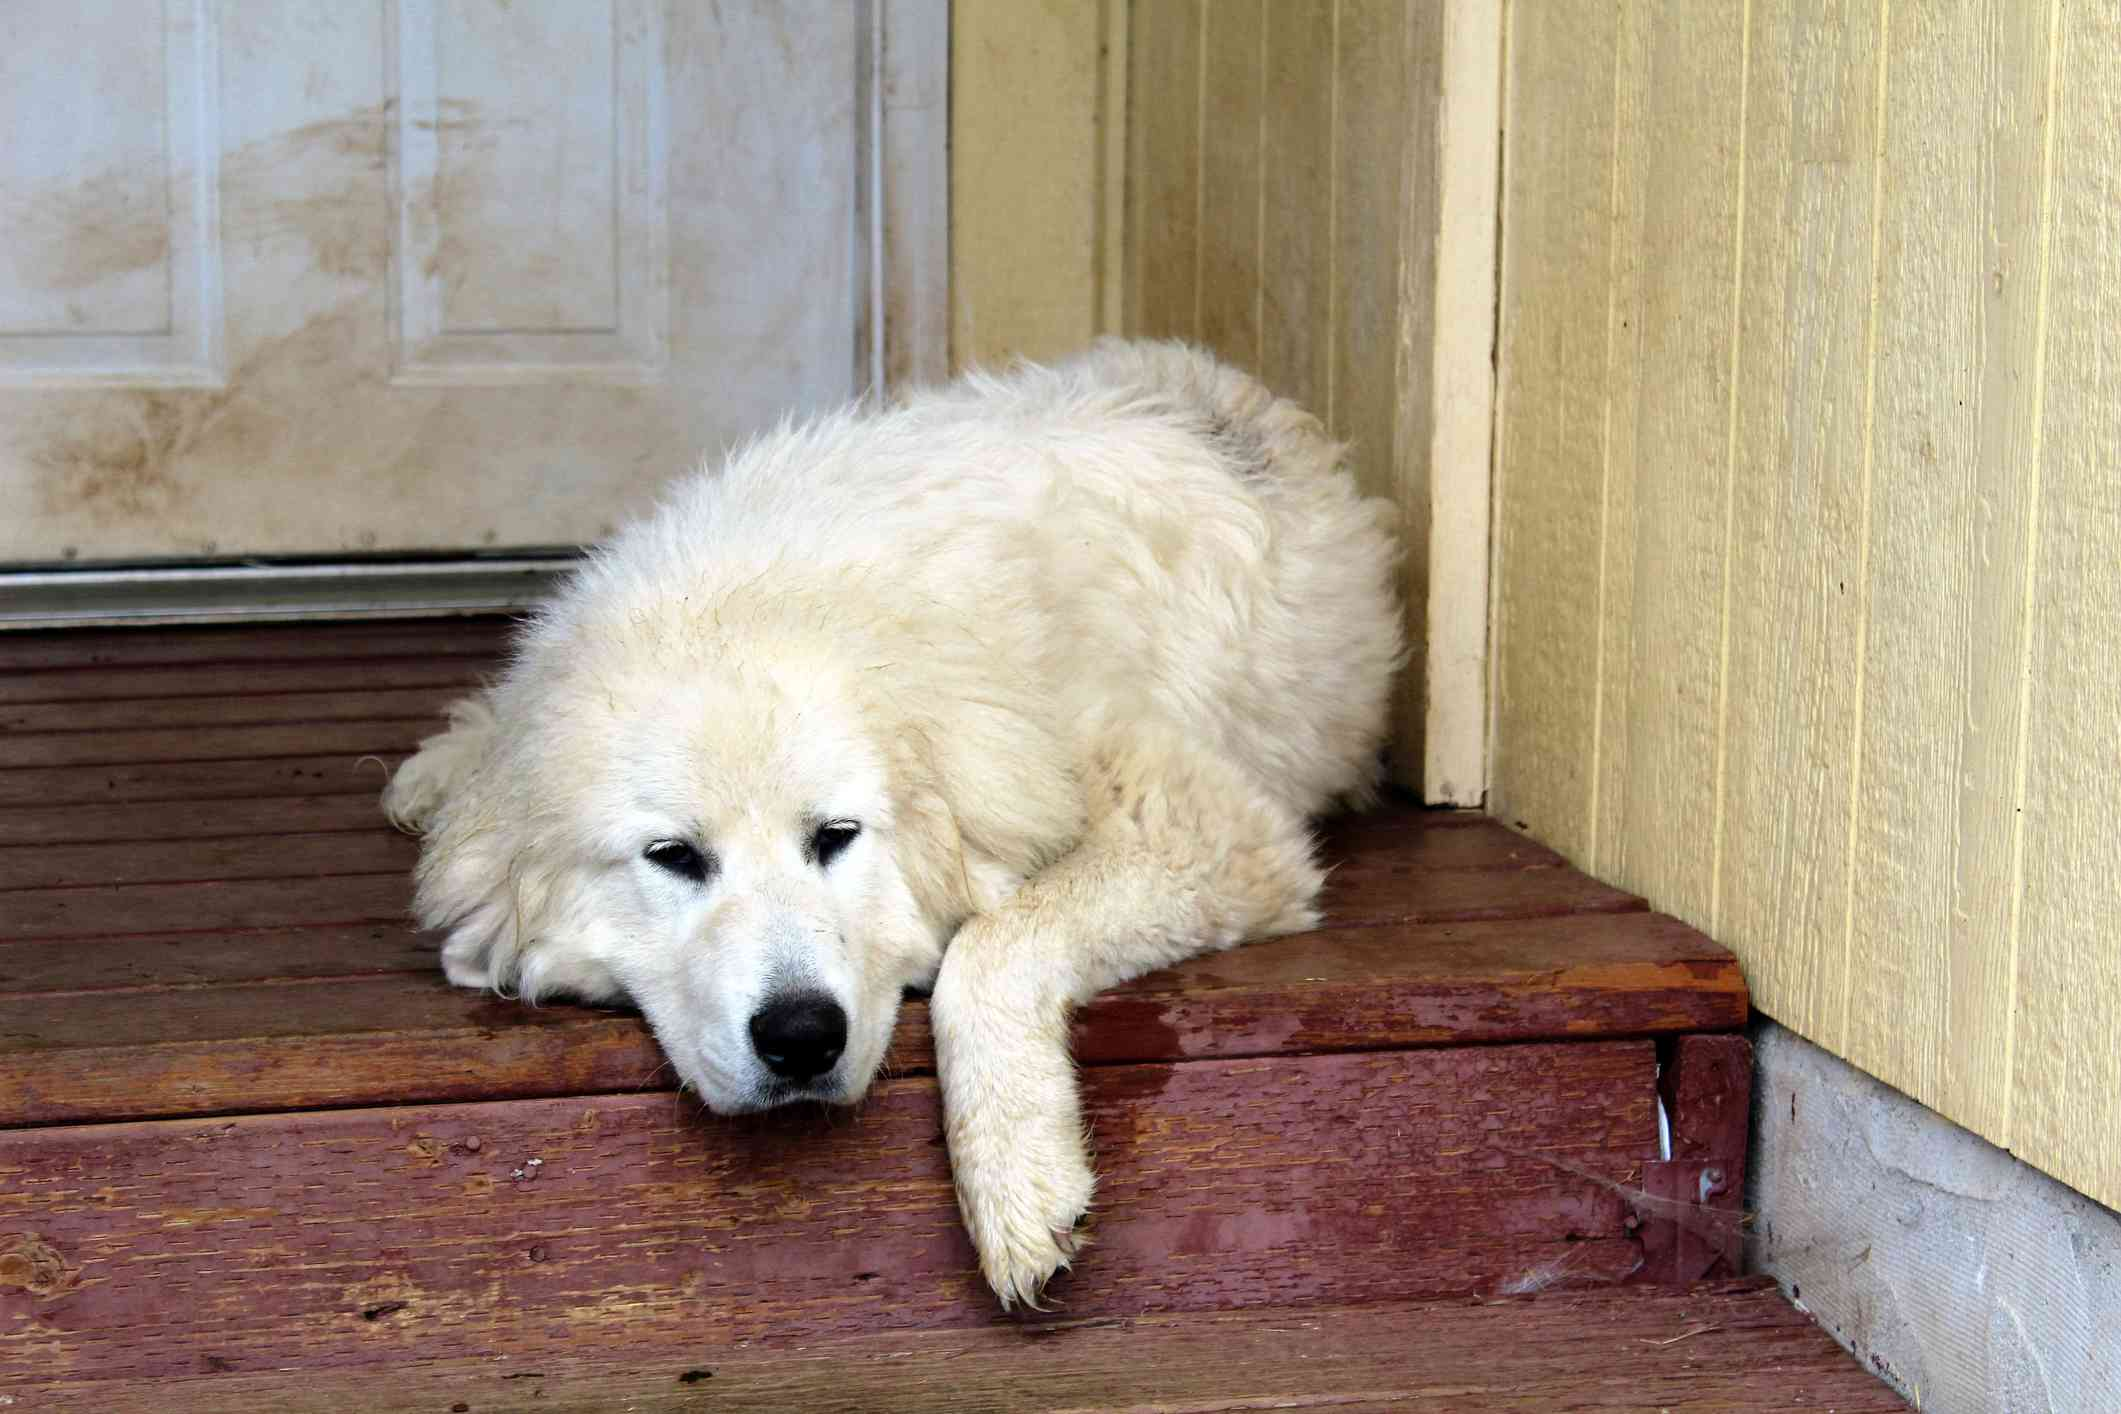 A fluffy, white Great Pyrenees laying on the steps.